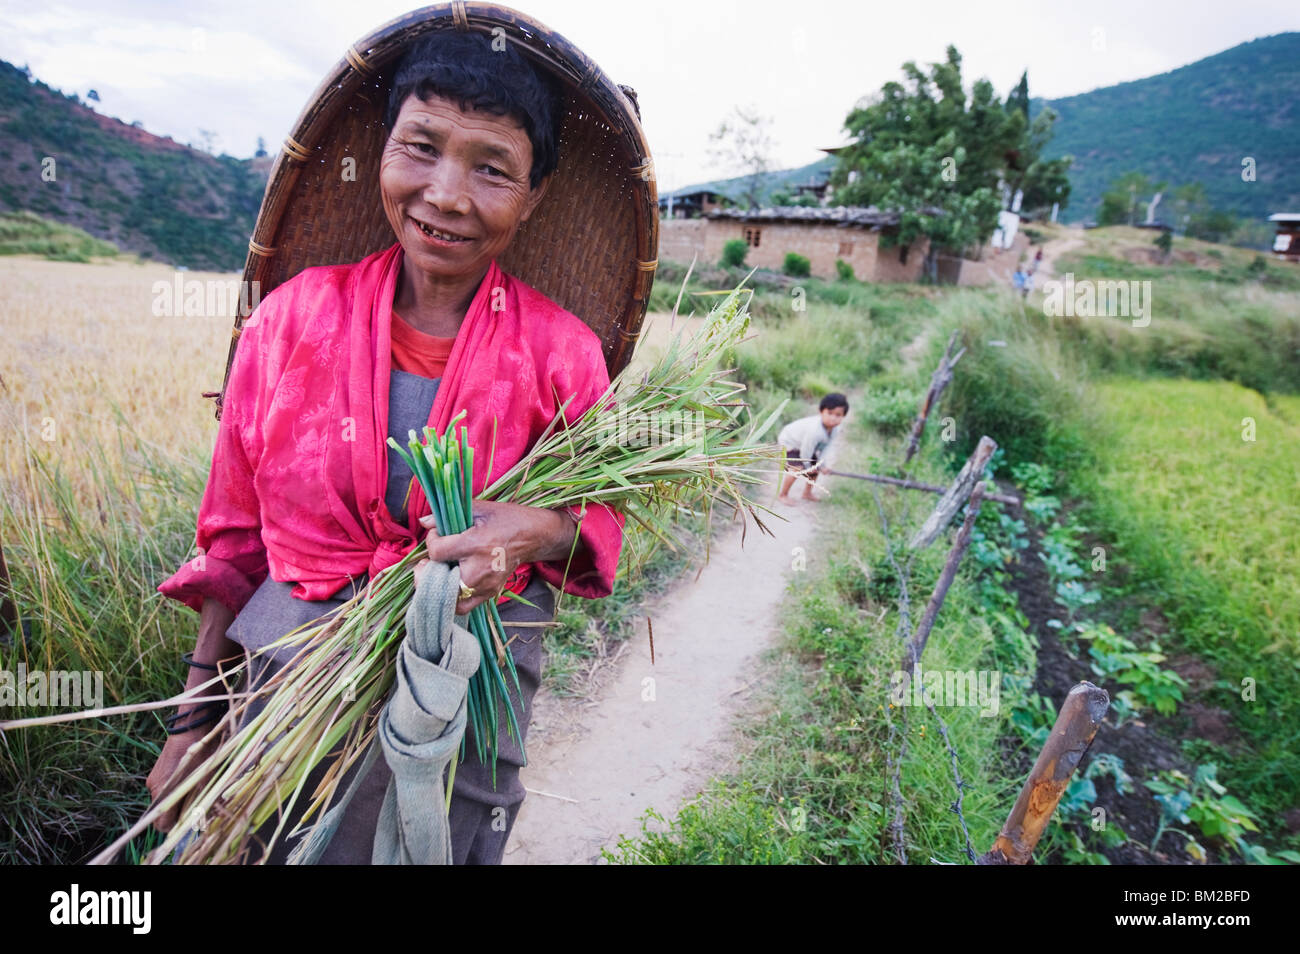 A local woman woking in the fields, Punakha, Bhutan - Stock Image